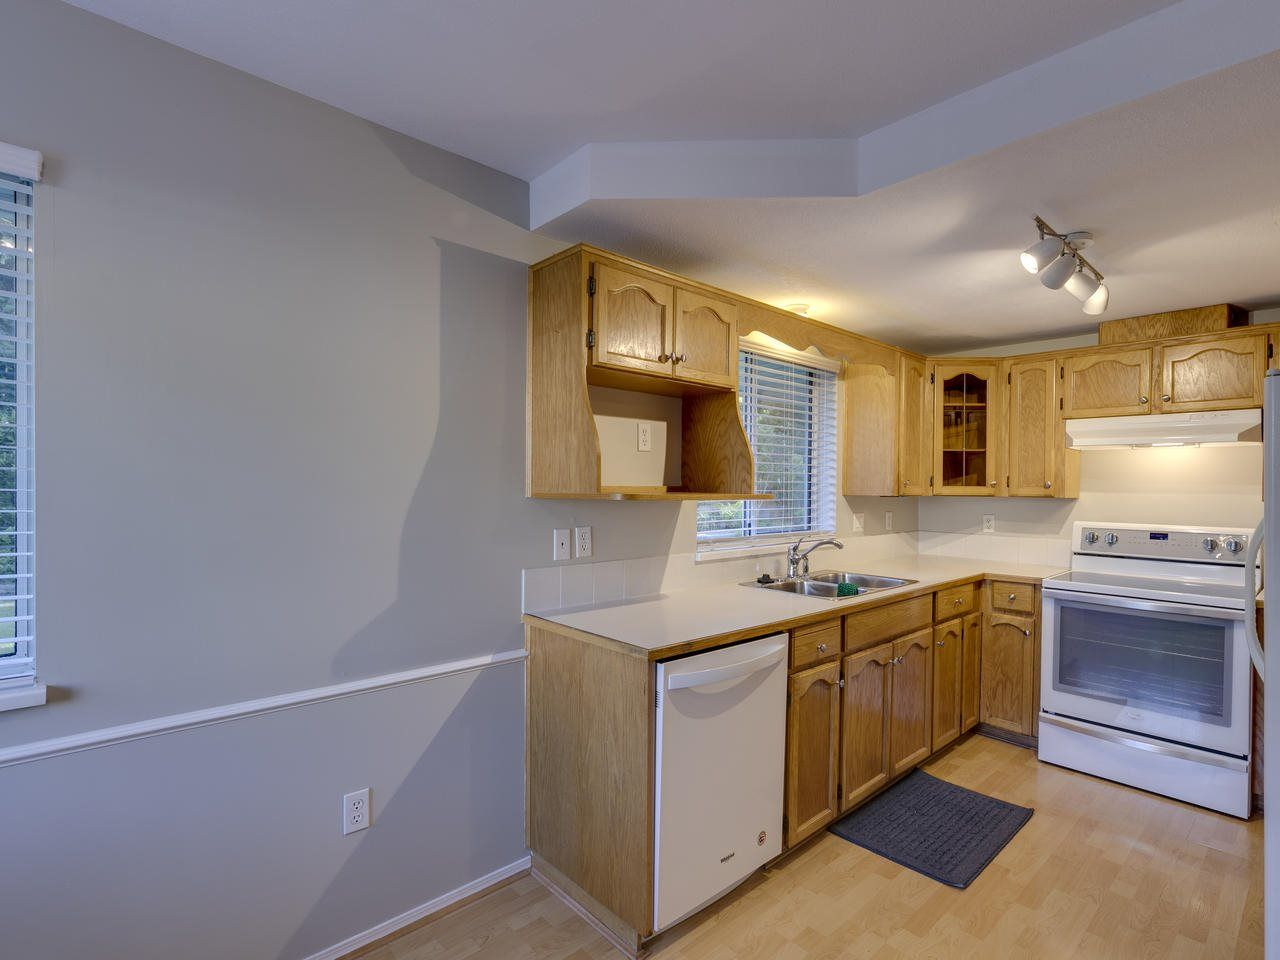 """Photo 23: Photos: 127 22555 116 Avenue in Maple Ridge: East Central Townhouse for sale in """"HILLSIDE"""" : MLS®# R2493046"""